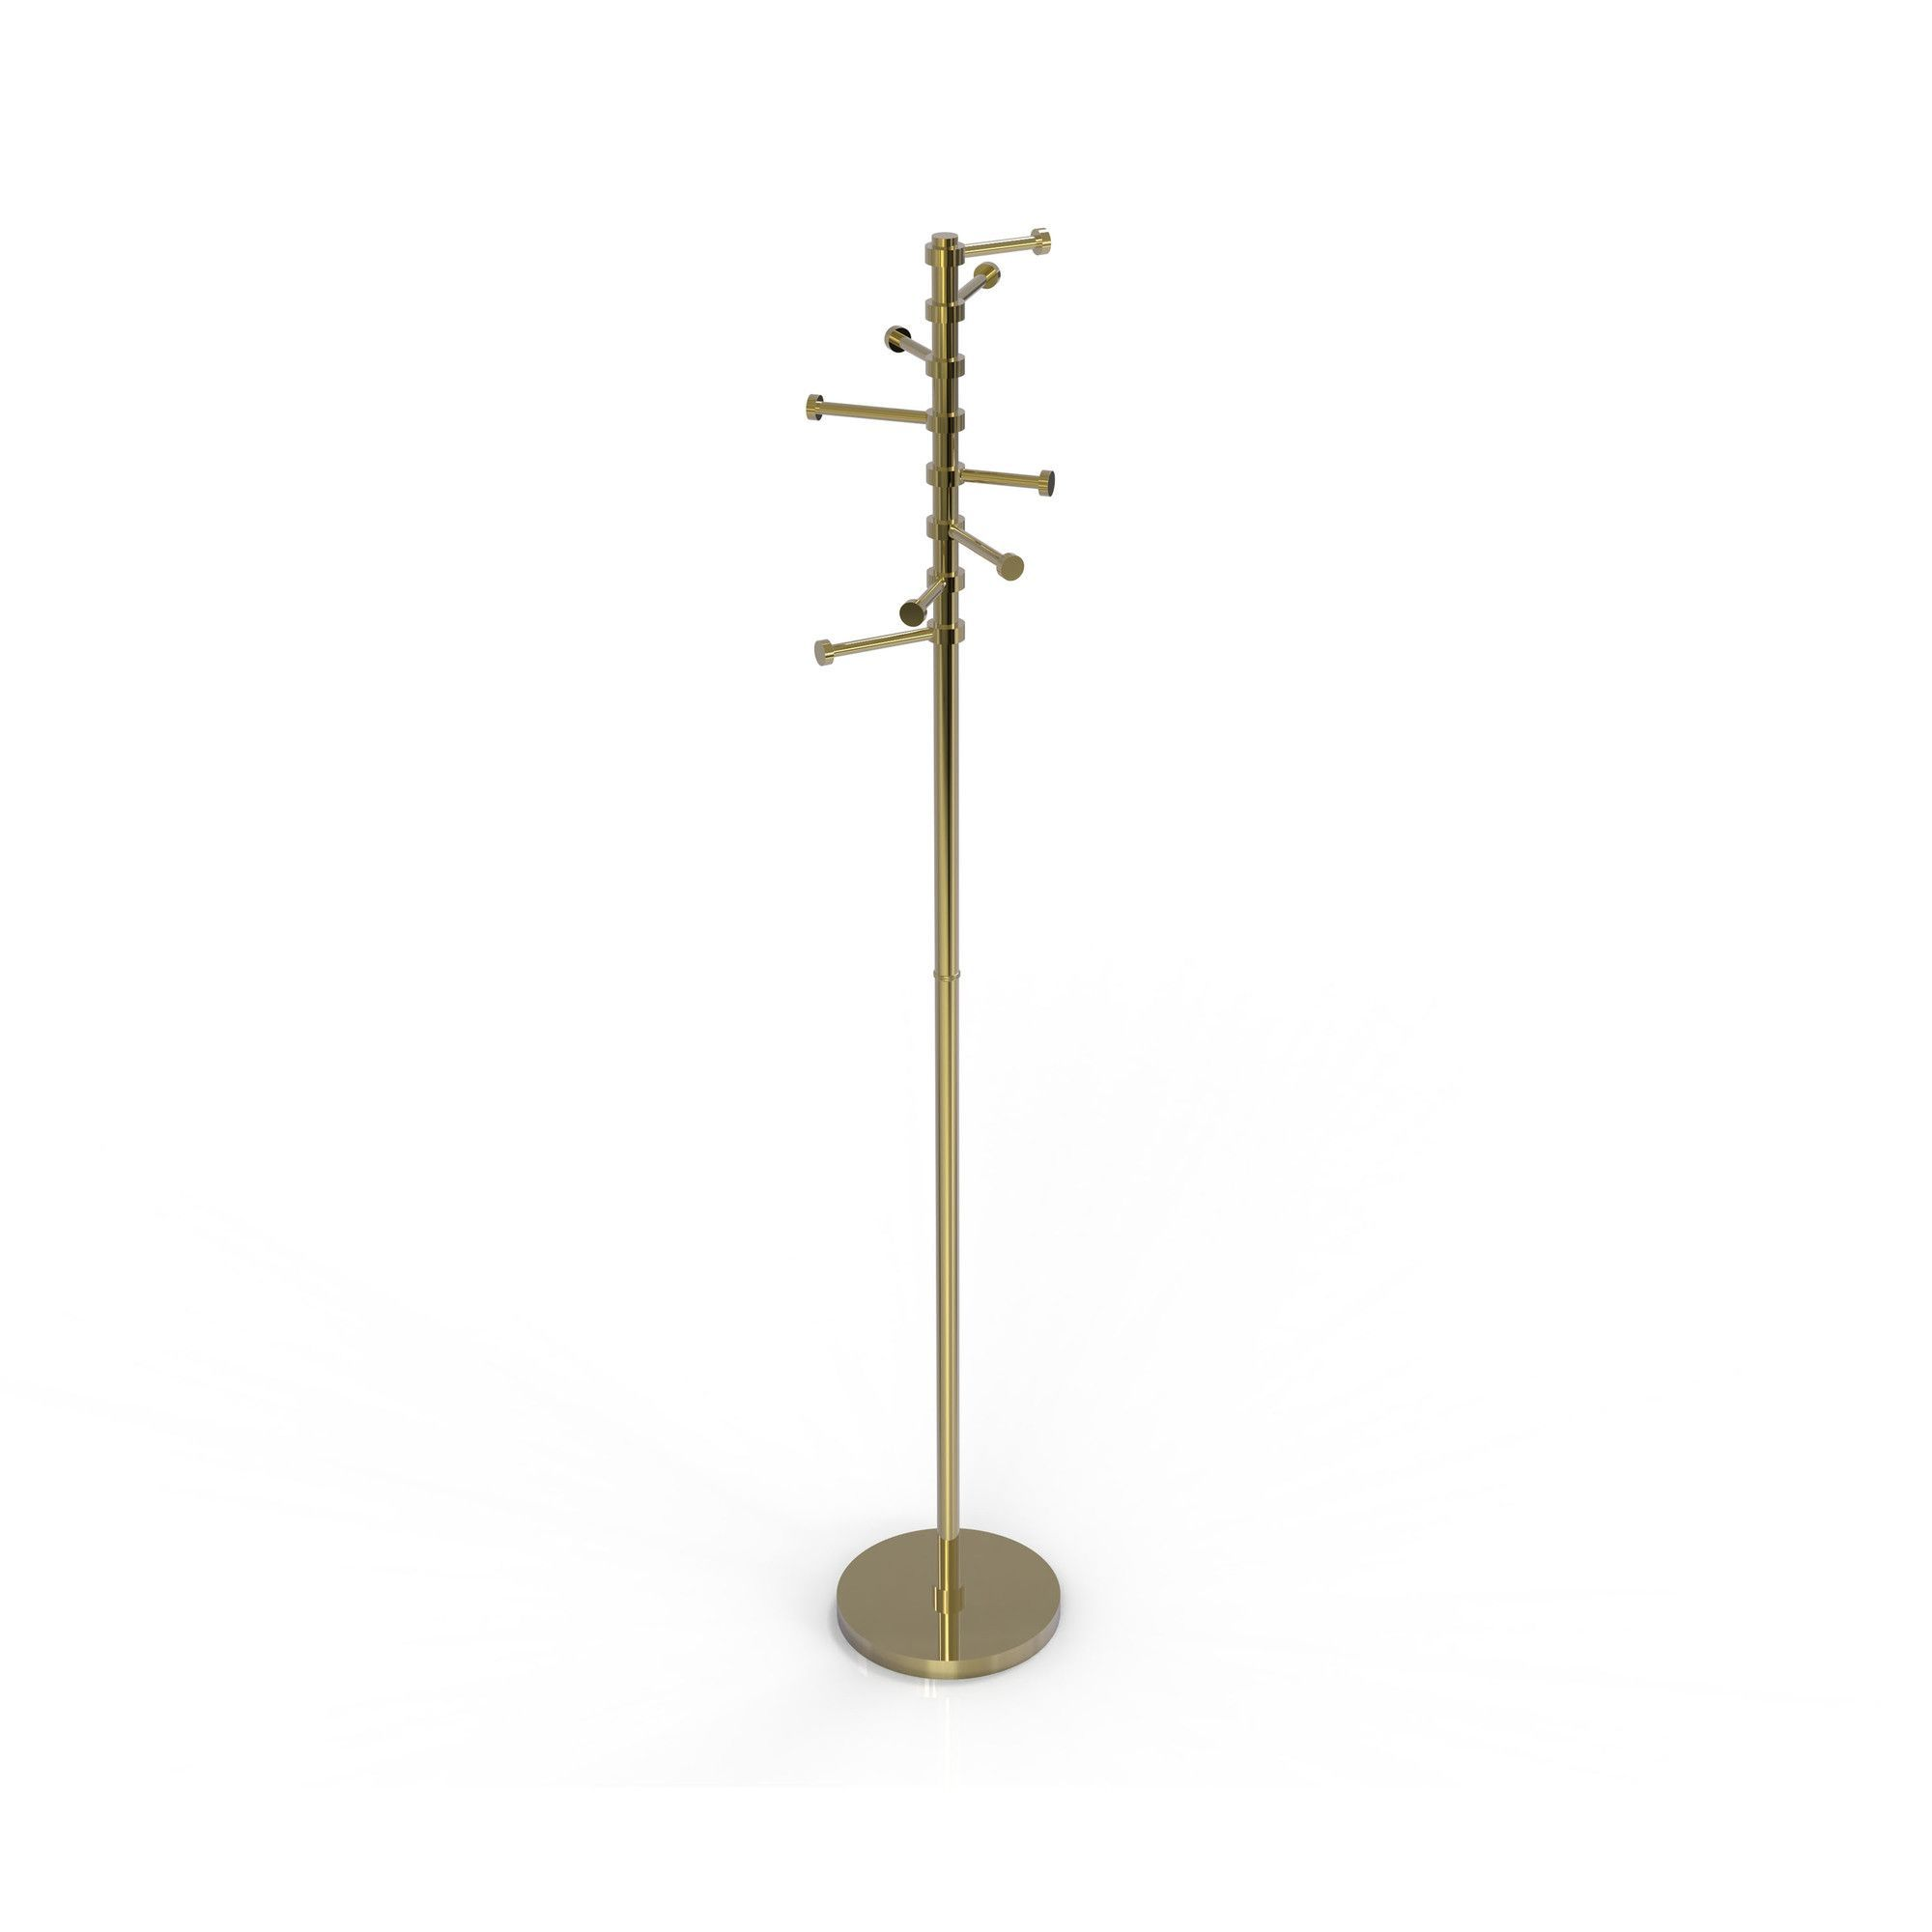 Free Standing Coat Rack with Six Pivoting Pegs